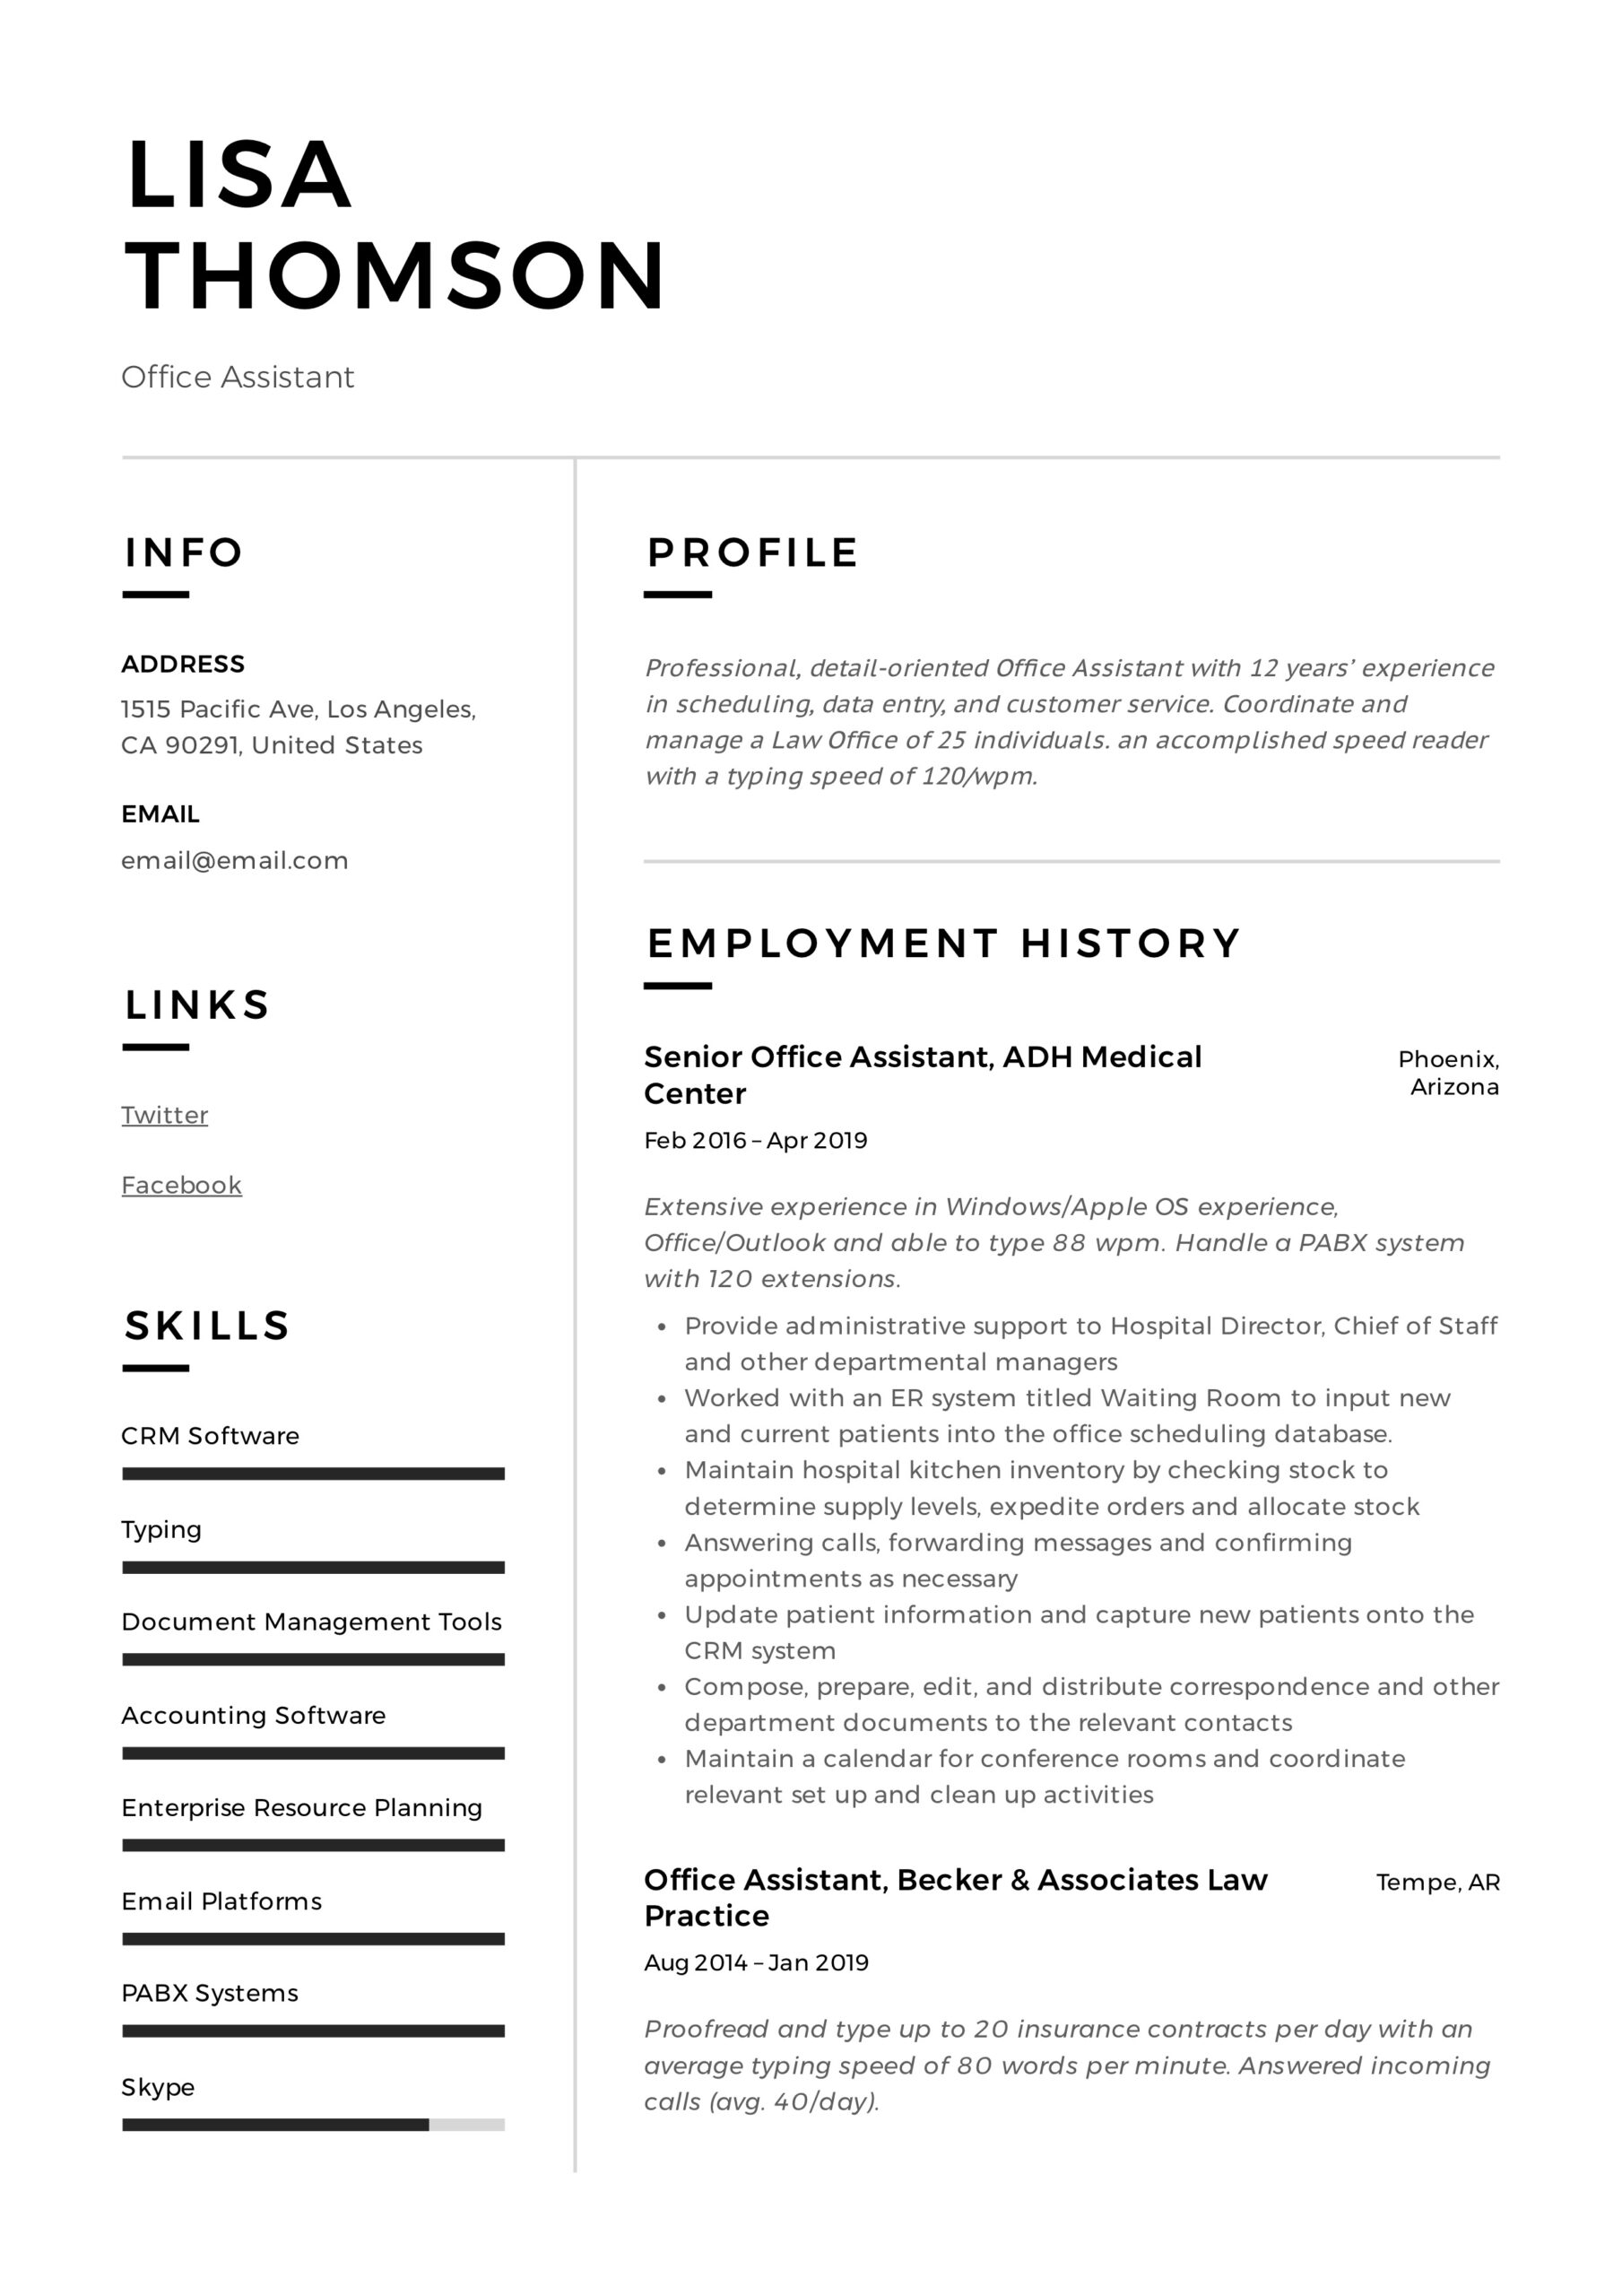 office assistant resume writing guide templates accounting administrative lisa thomson Resume Accounting Administrative Assistant Resume